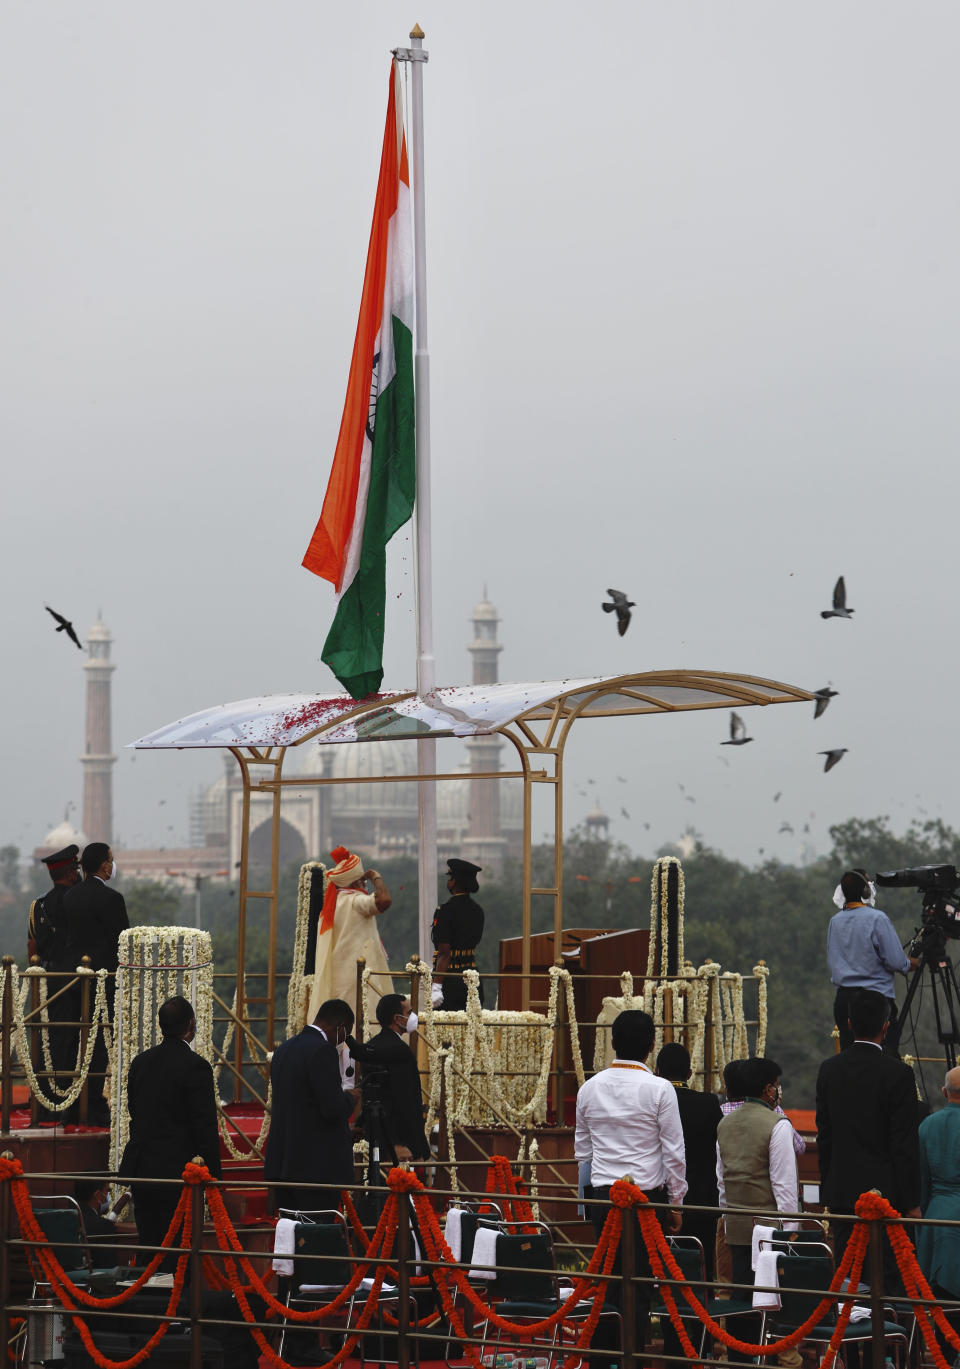 Indian Prime Minister Narendra salutes the national flag flying from the ramparts of the historic Red Fort monument on Independence Day in New Delhi, India, Saturday, Aug. 15, 2020. (AP Photo/Manish Swarup)